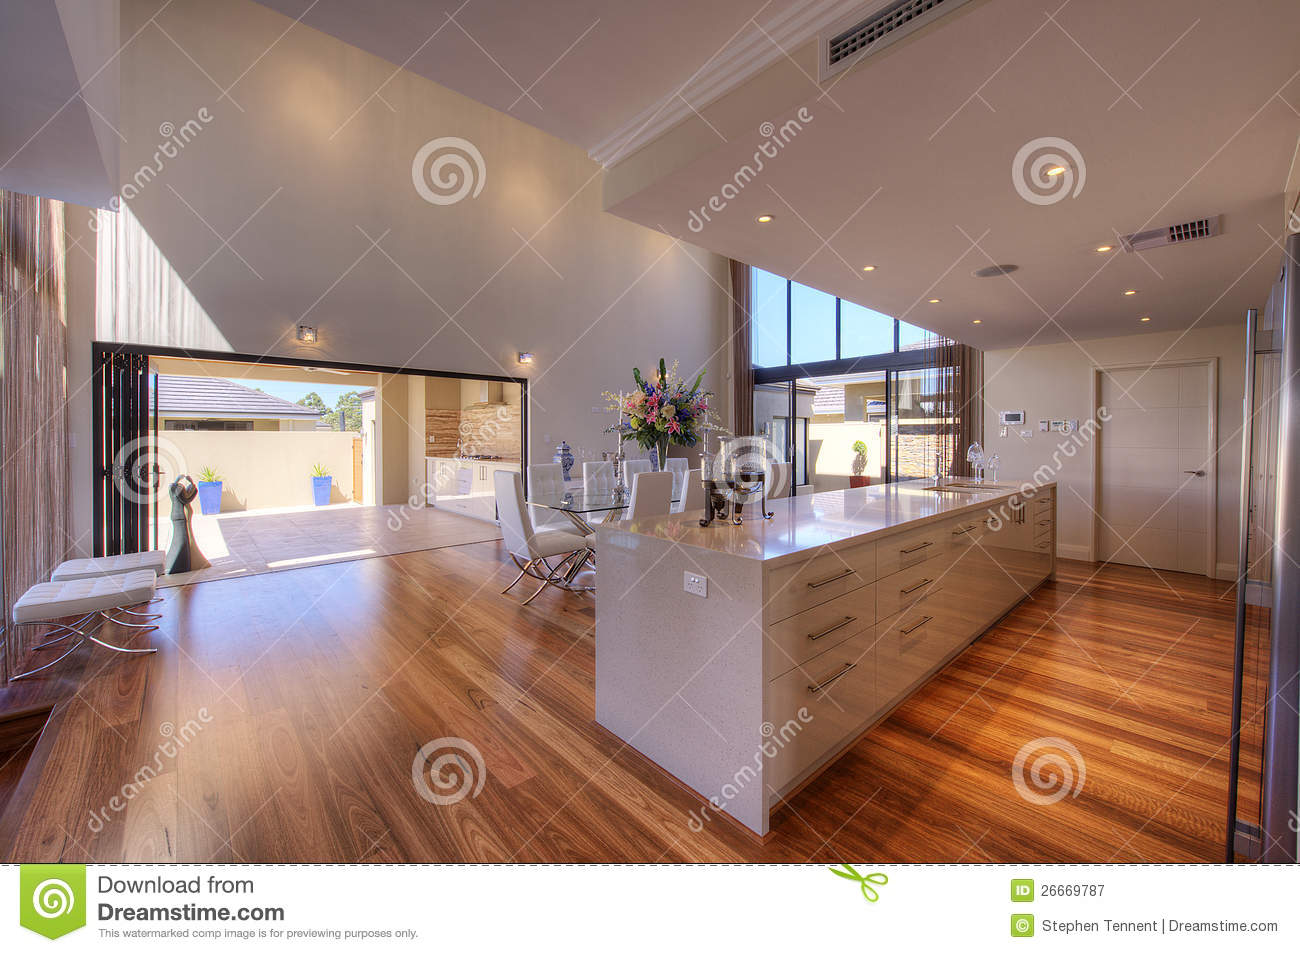 Luxurious modern open plan galley kitchen stock image for House plans with galley kitchen